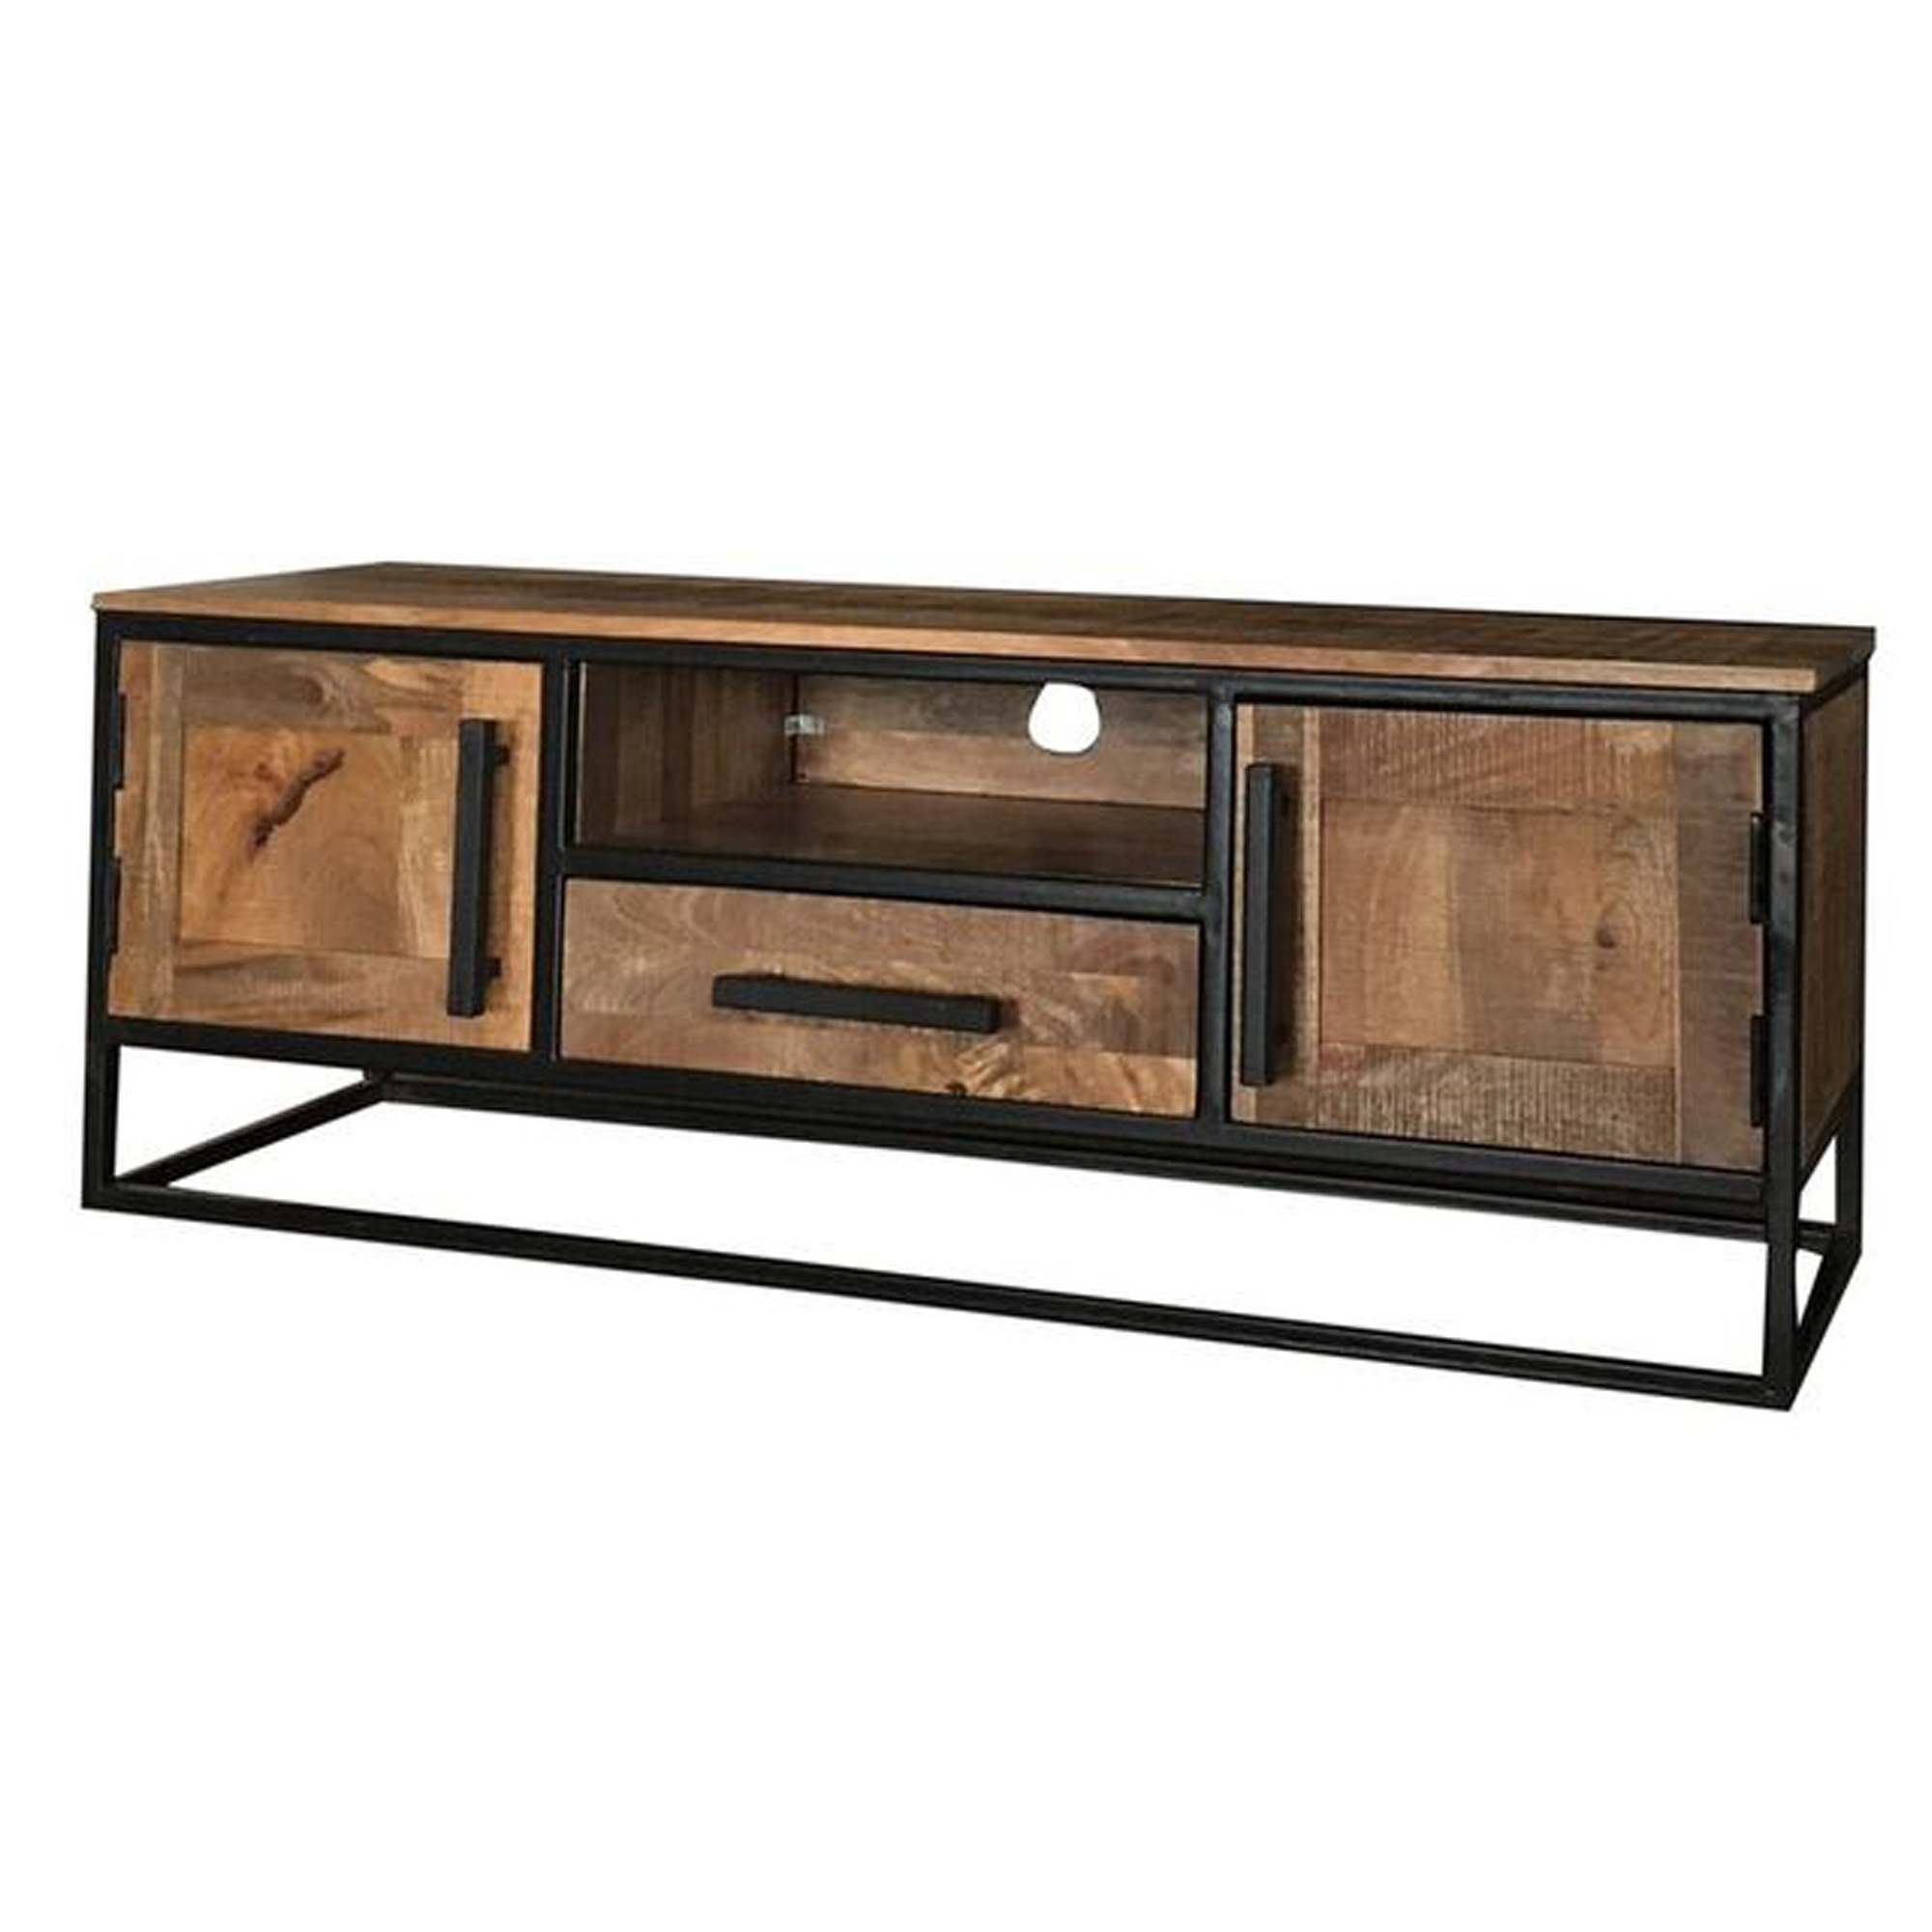 Cool Industrial Low Tv Unit Machost Co Dining Chair Design Ideas Machostcouk